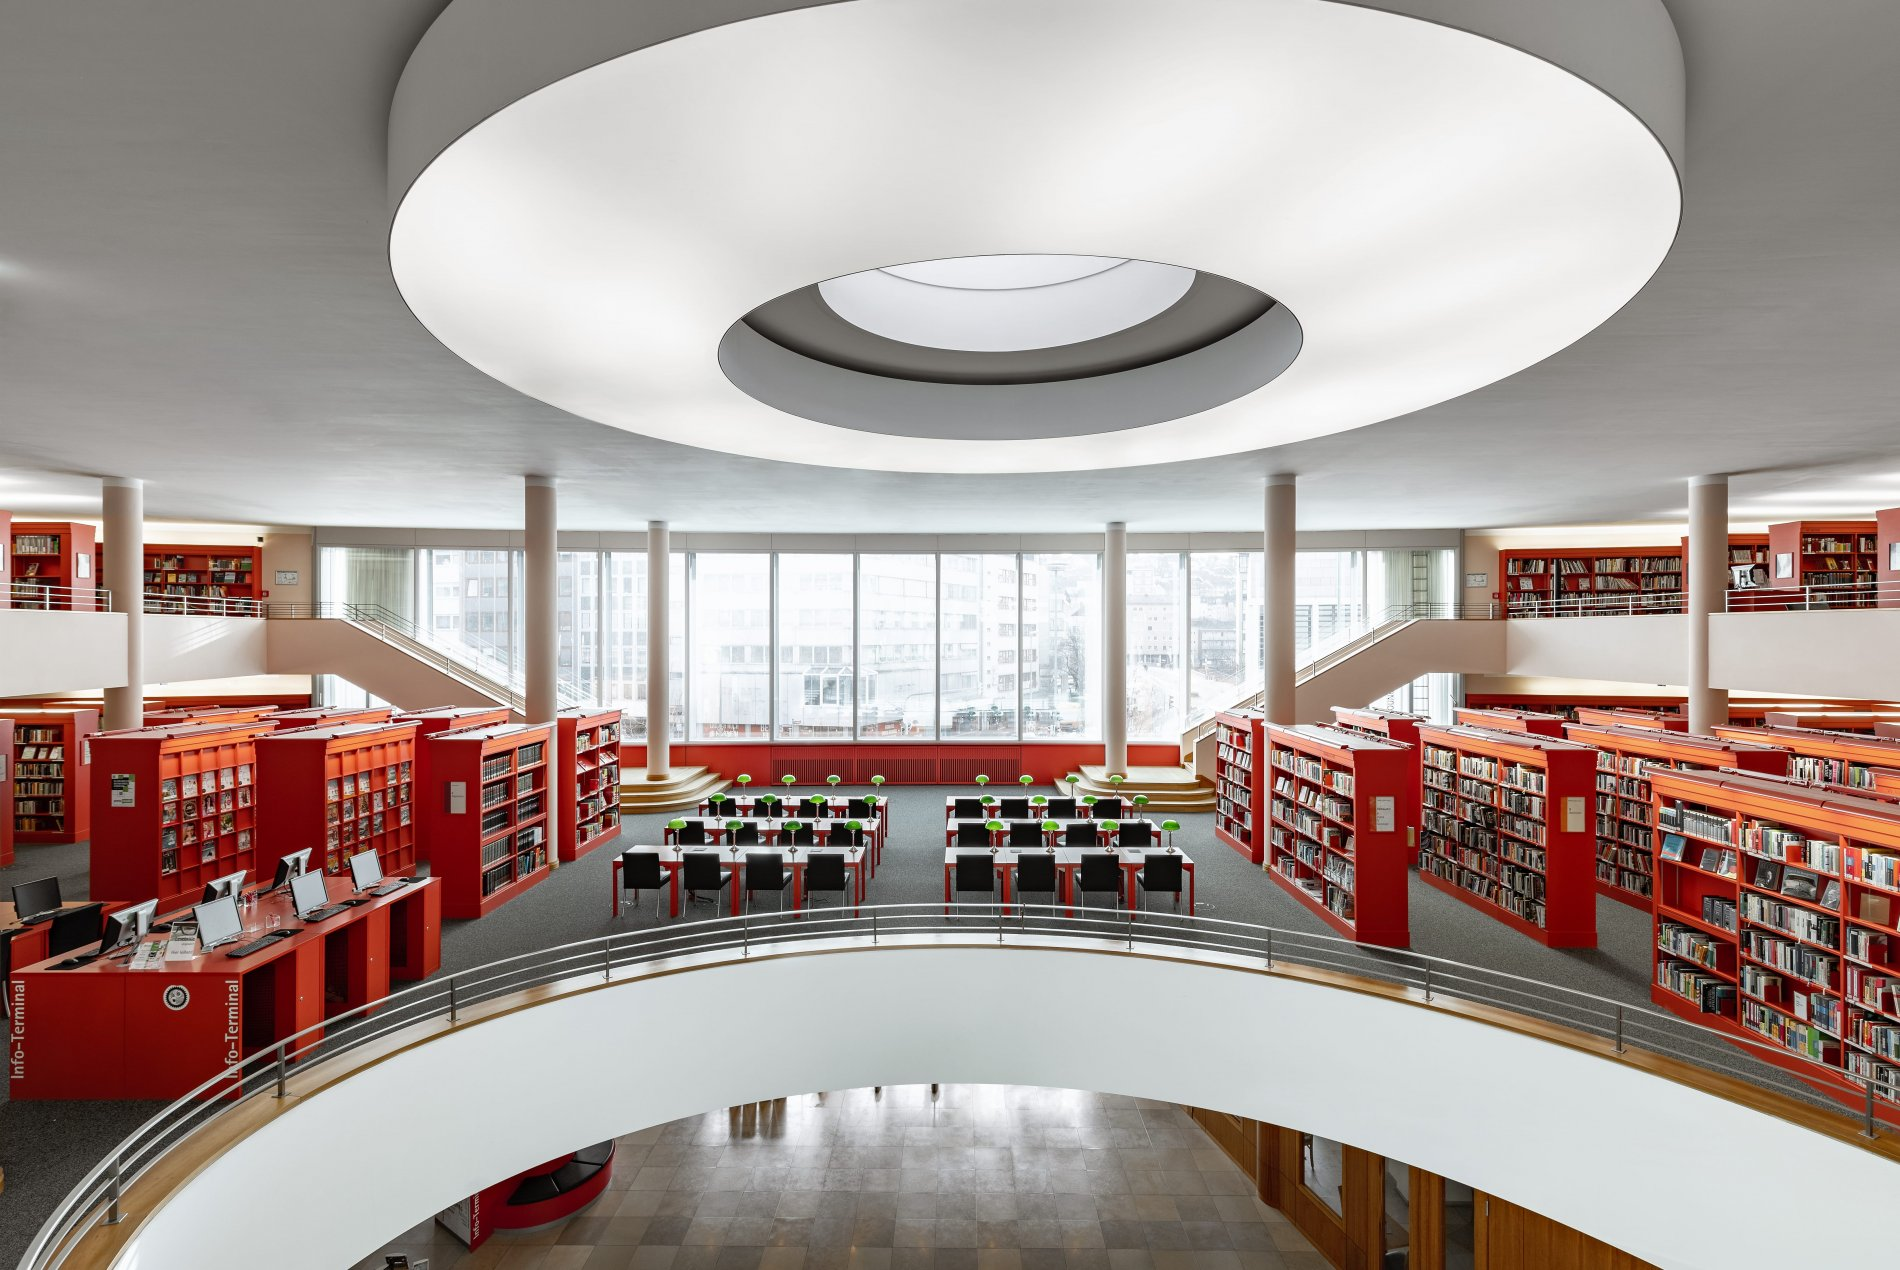 Insight into the premises of the Pforzheim City Library.